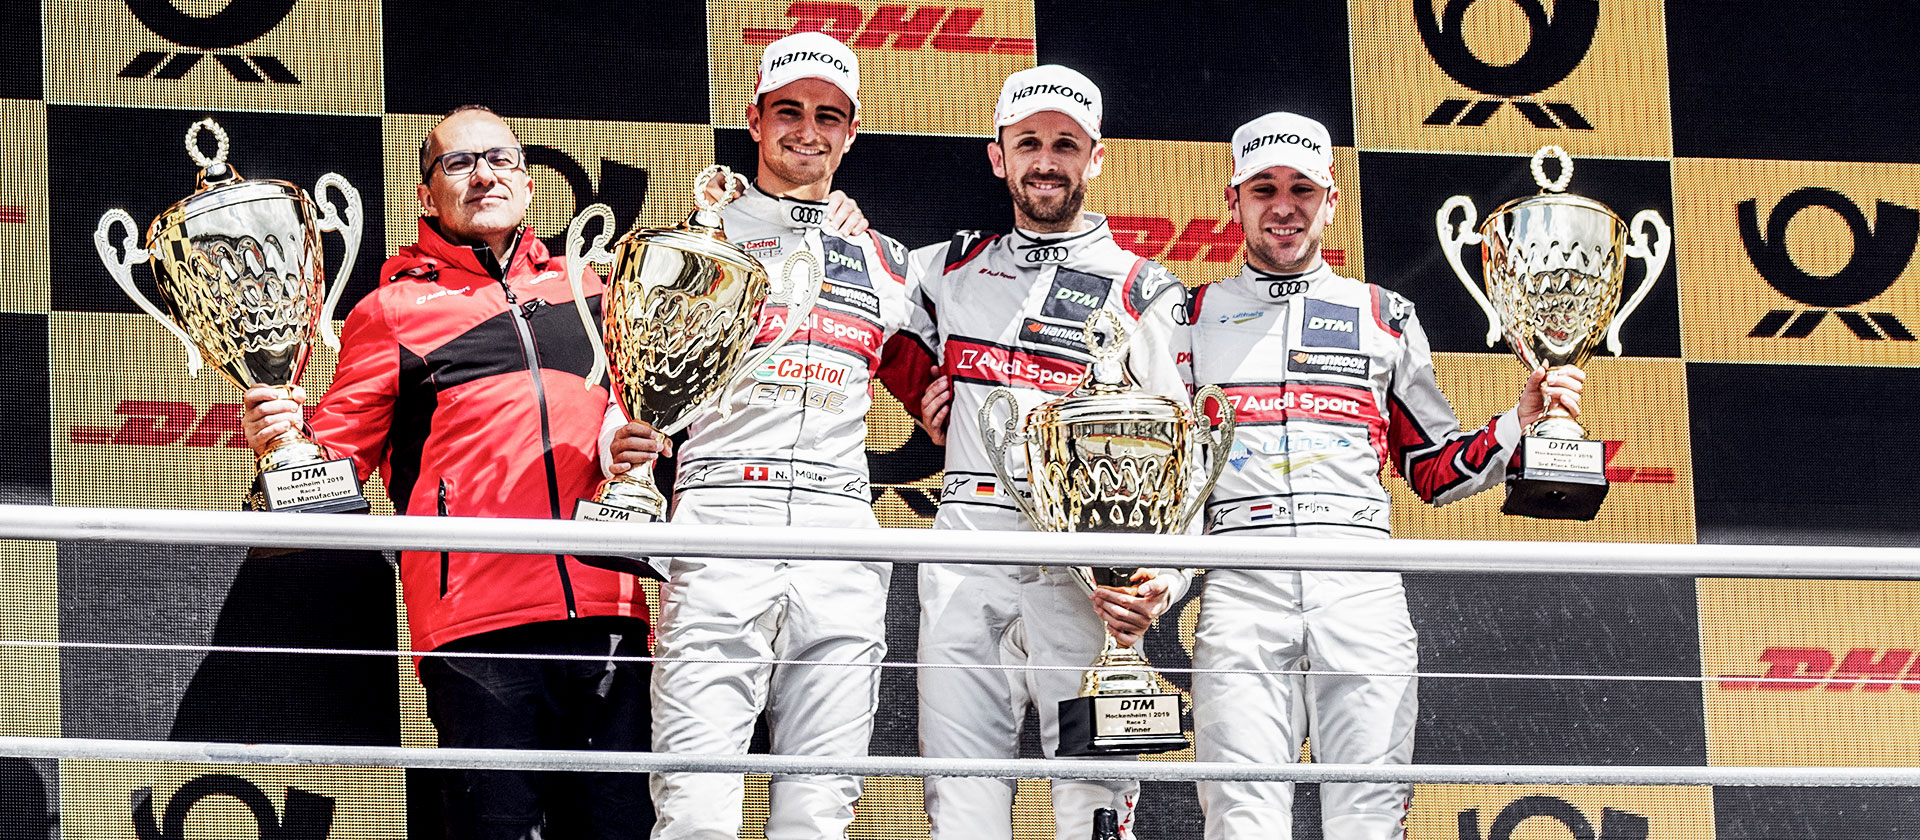 Nico Müller, René Rast and Robin Frijns on the podium